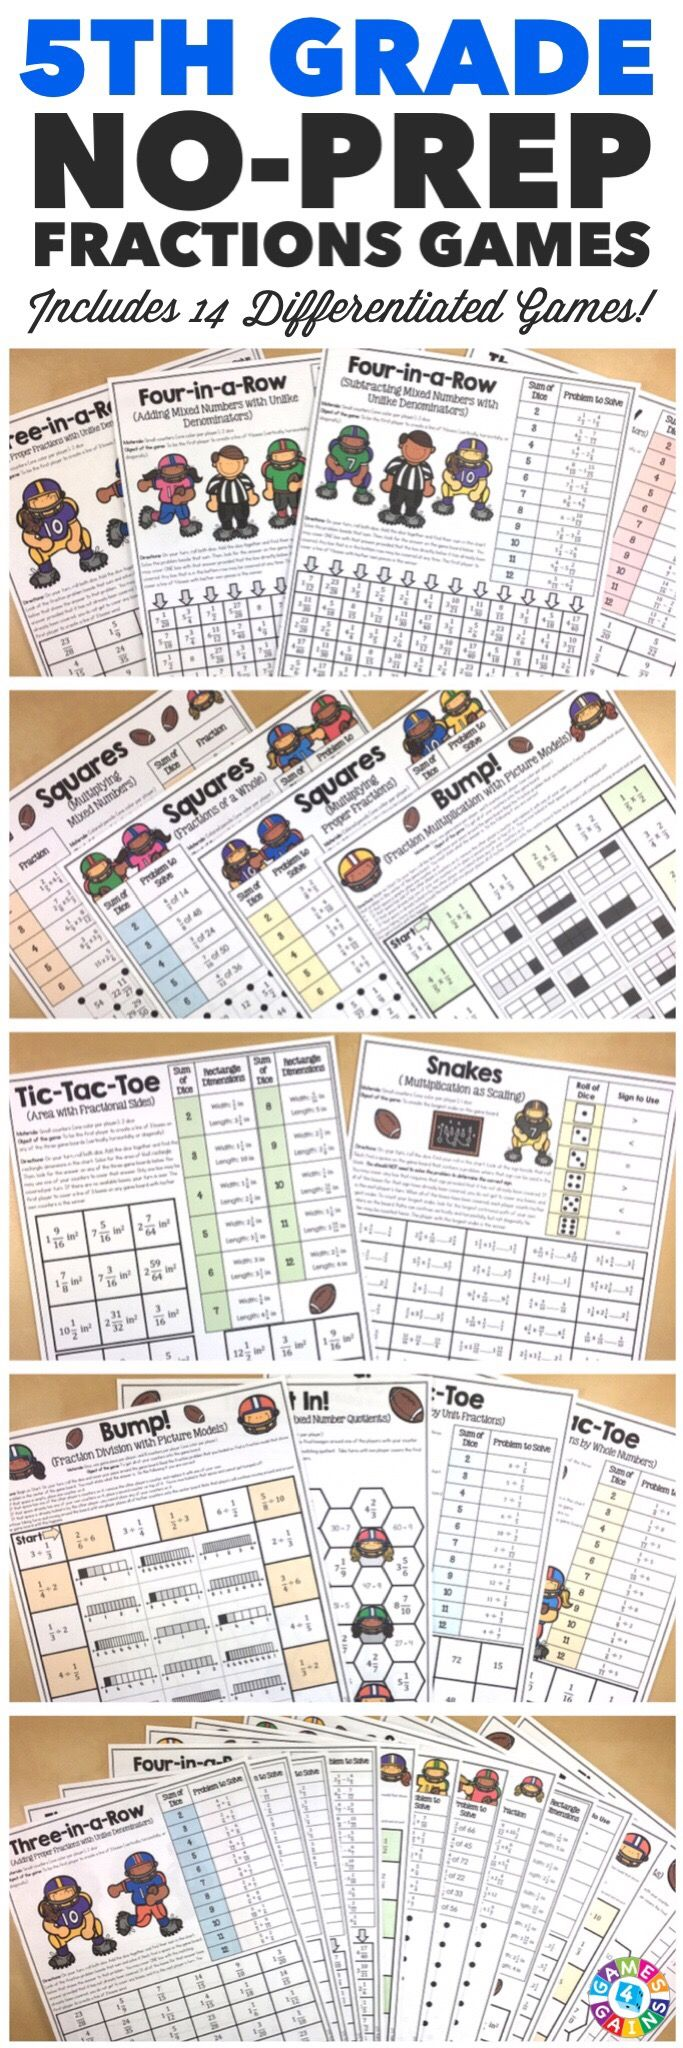 """I LOVE that these games include different skill levels for fractions and the kids LOVE them too!"" This 5th Grade Fractions Games Pack includes 14 differentiated games for practicing adding fractions, subtracting fractions, multiplying fractions, dividing fractions, simplifying fractions, and calculating area with fractions.  These games support all of the 5th grade CCSS fraction standards!"